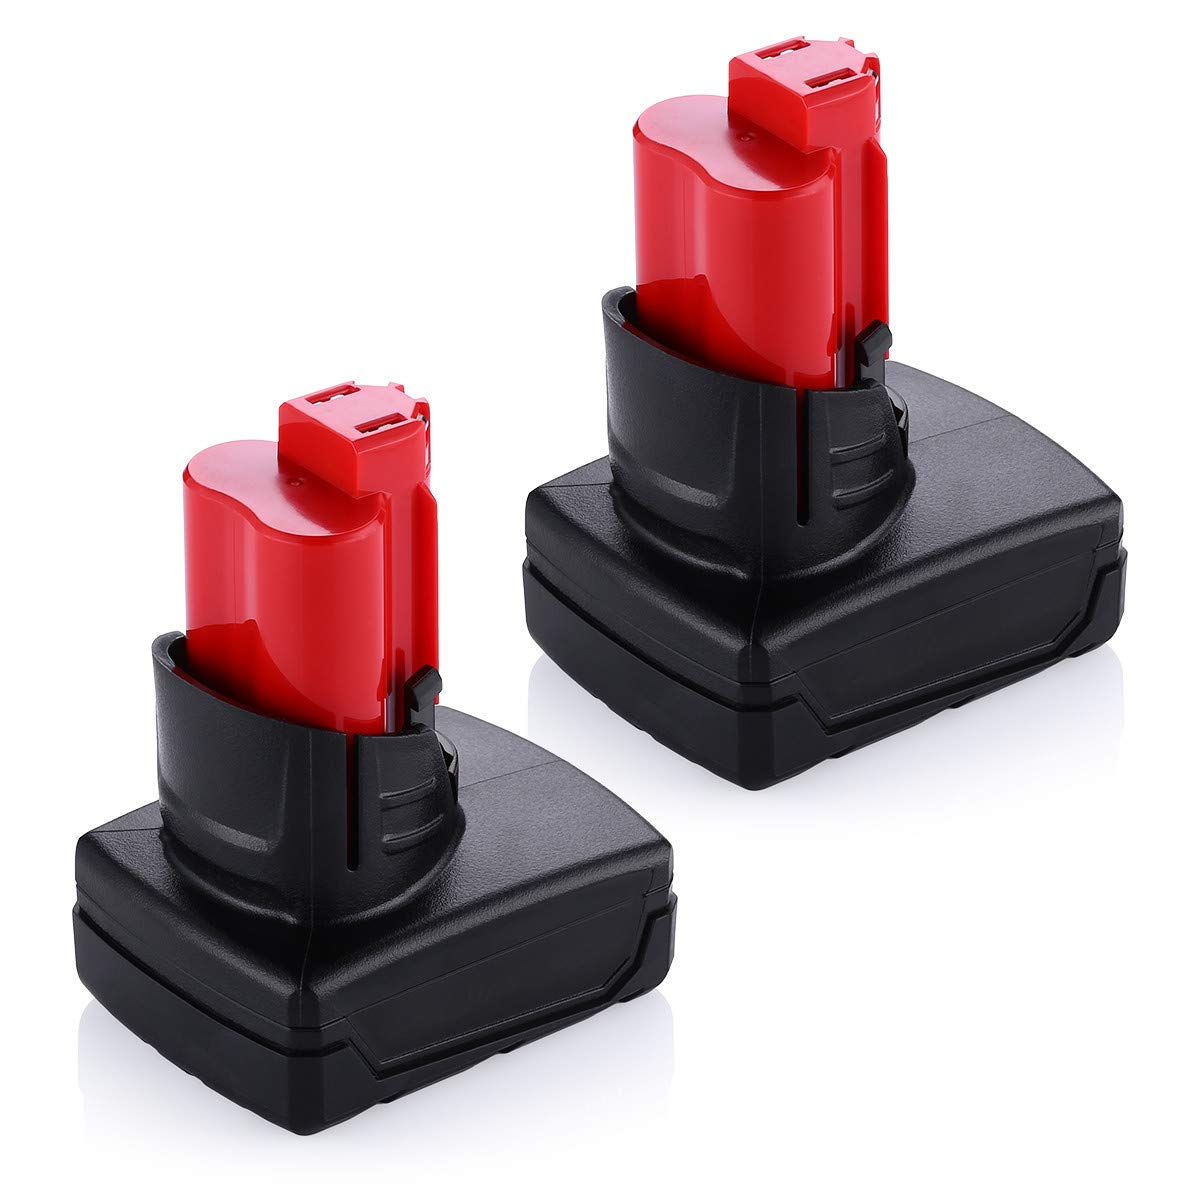 Upgraded Powerextra 6.0Ah 12V Lithium-ion Replacement Battery Compatible with Milwaukee M12 Milwaukee 48-11-2411 Lithium 12-Volt Cordless Milwaukee Tools,2 Pack